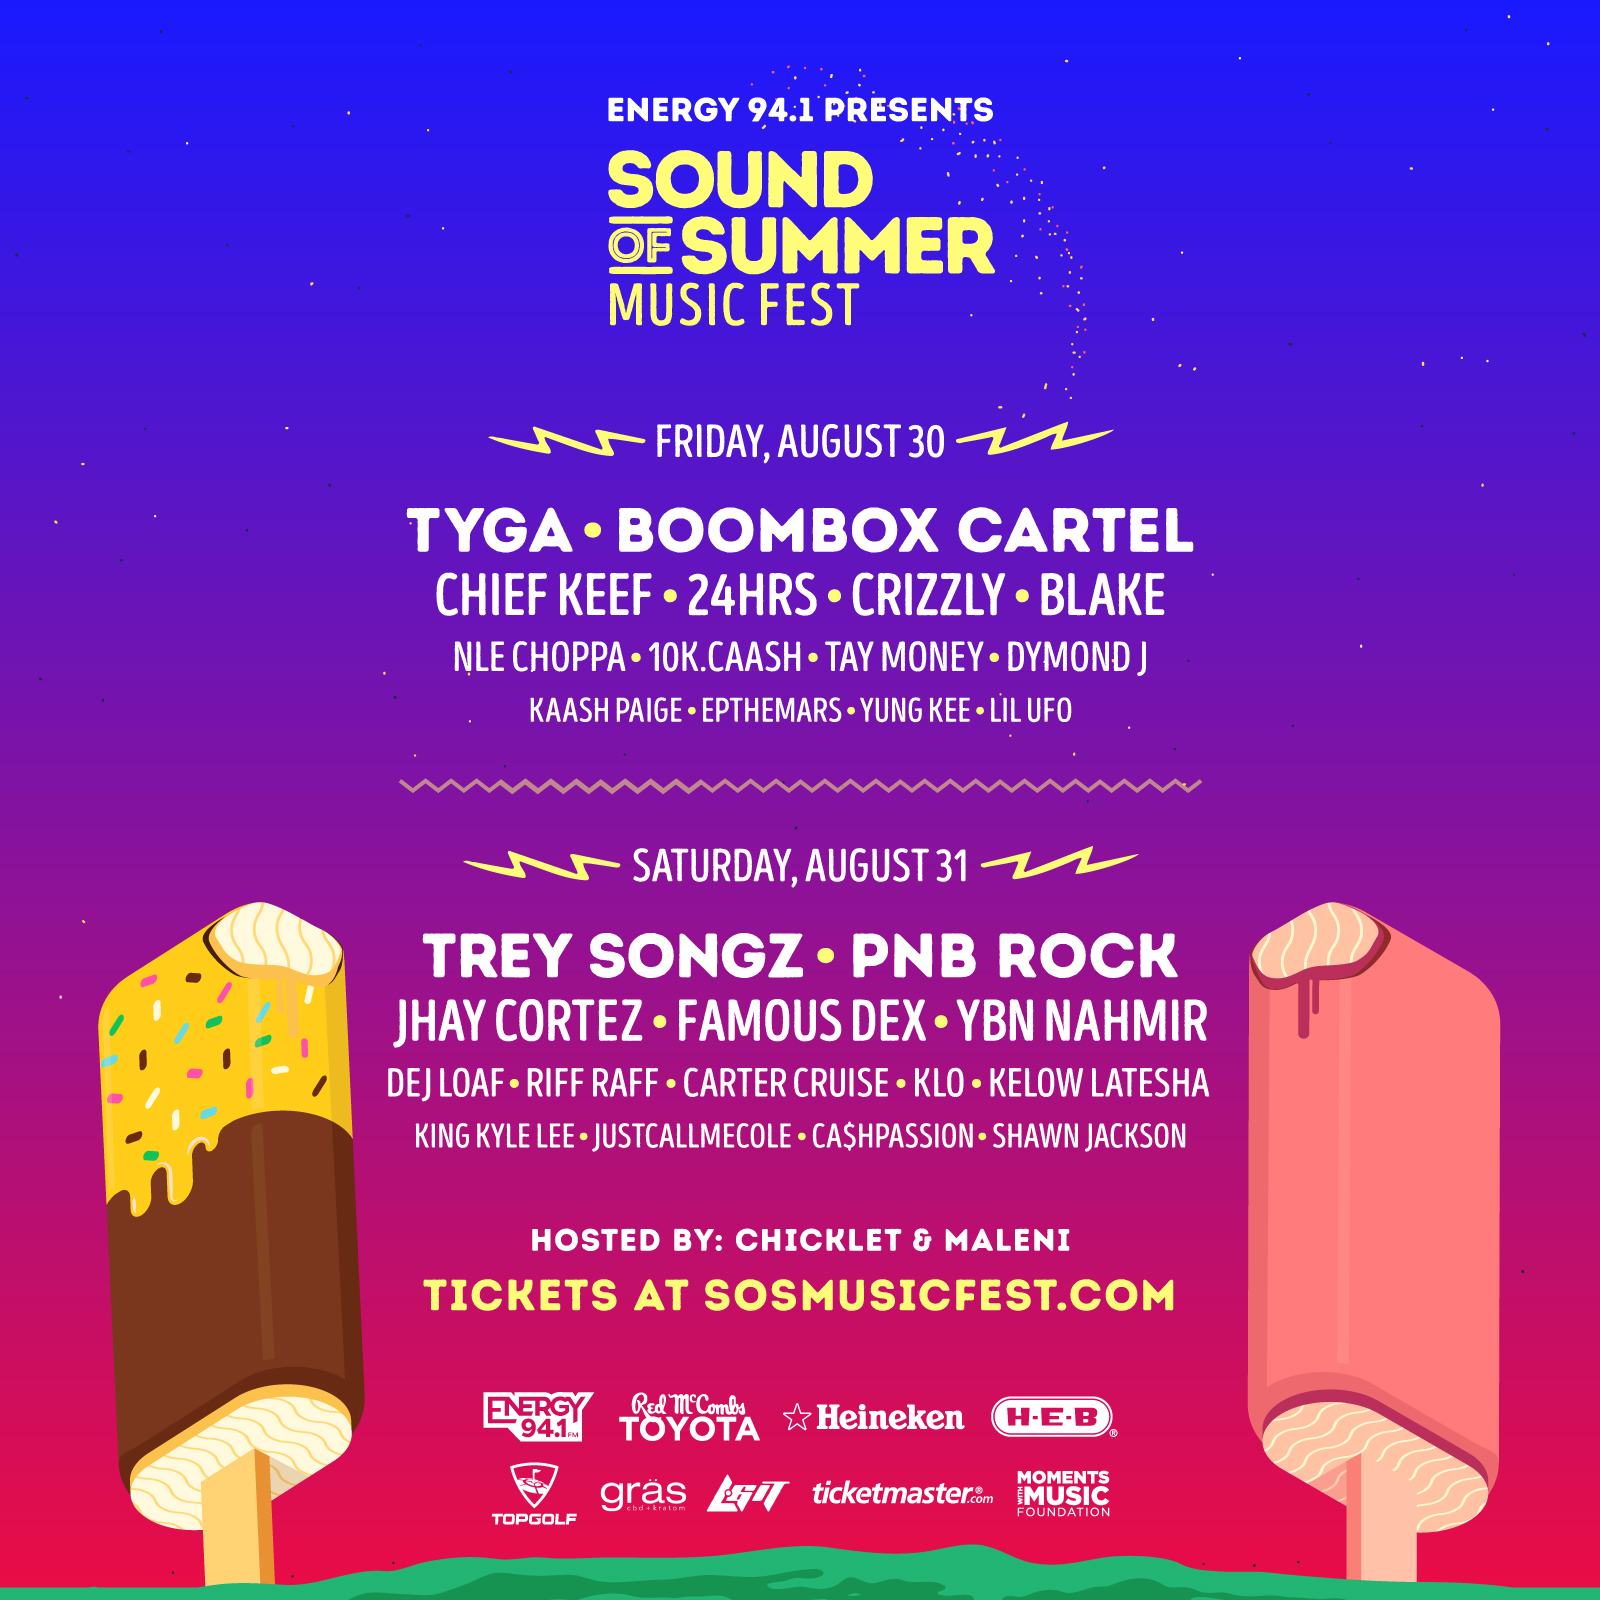 Sound of Summer Music Fest 2019 Lineup, presented by Energy 94.1